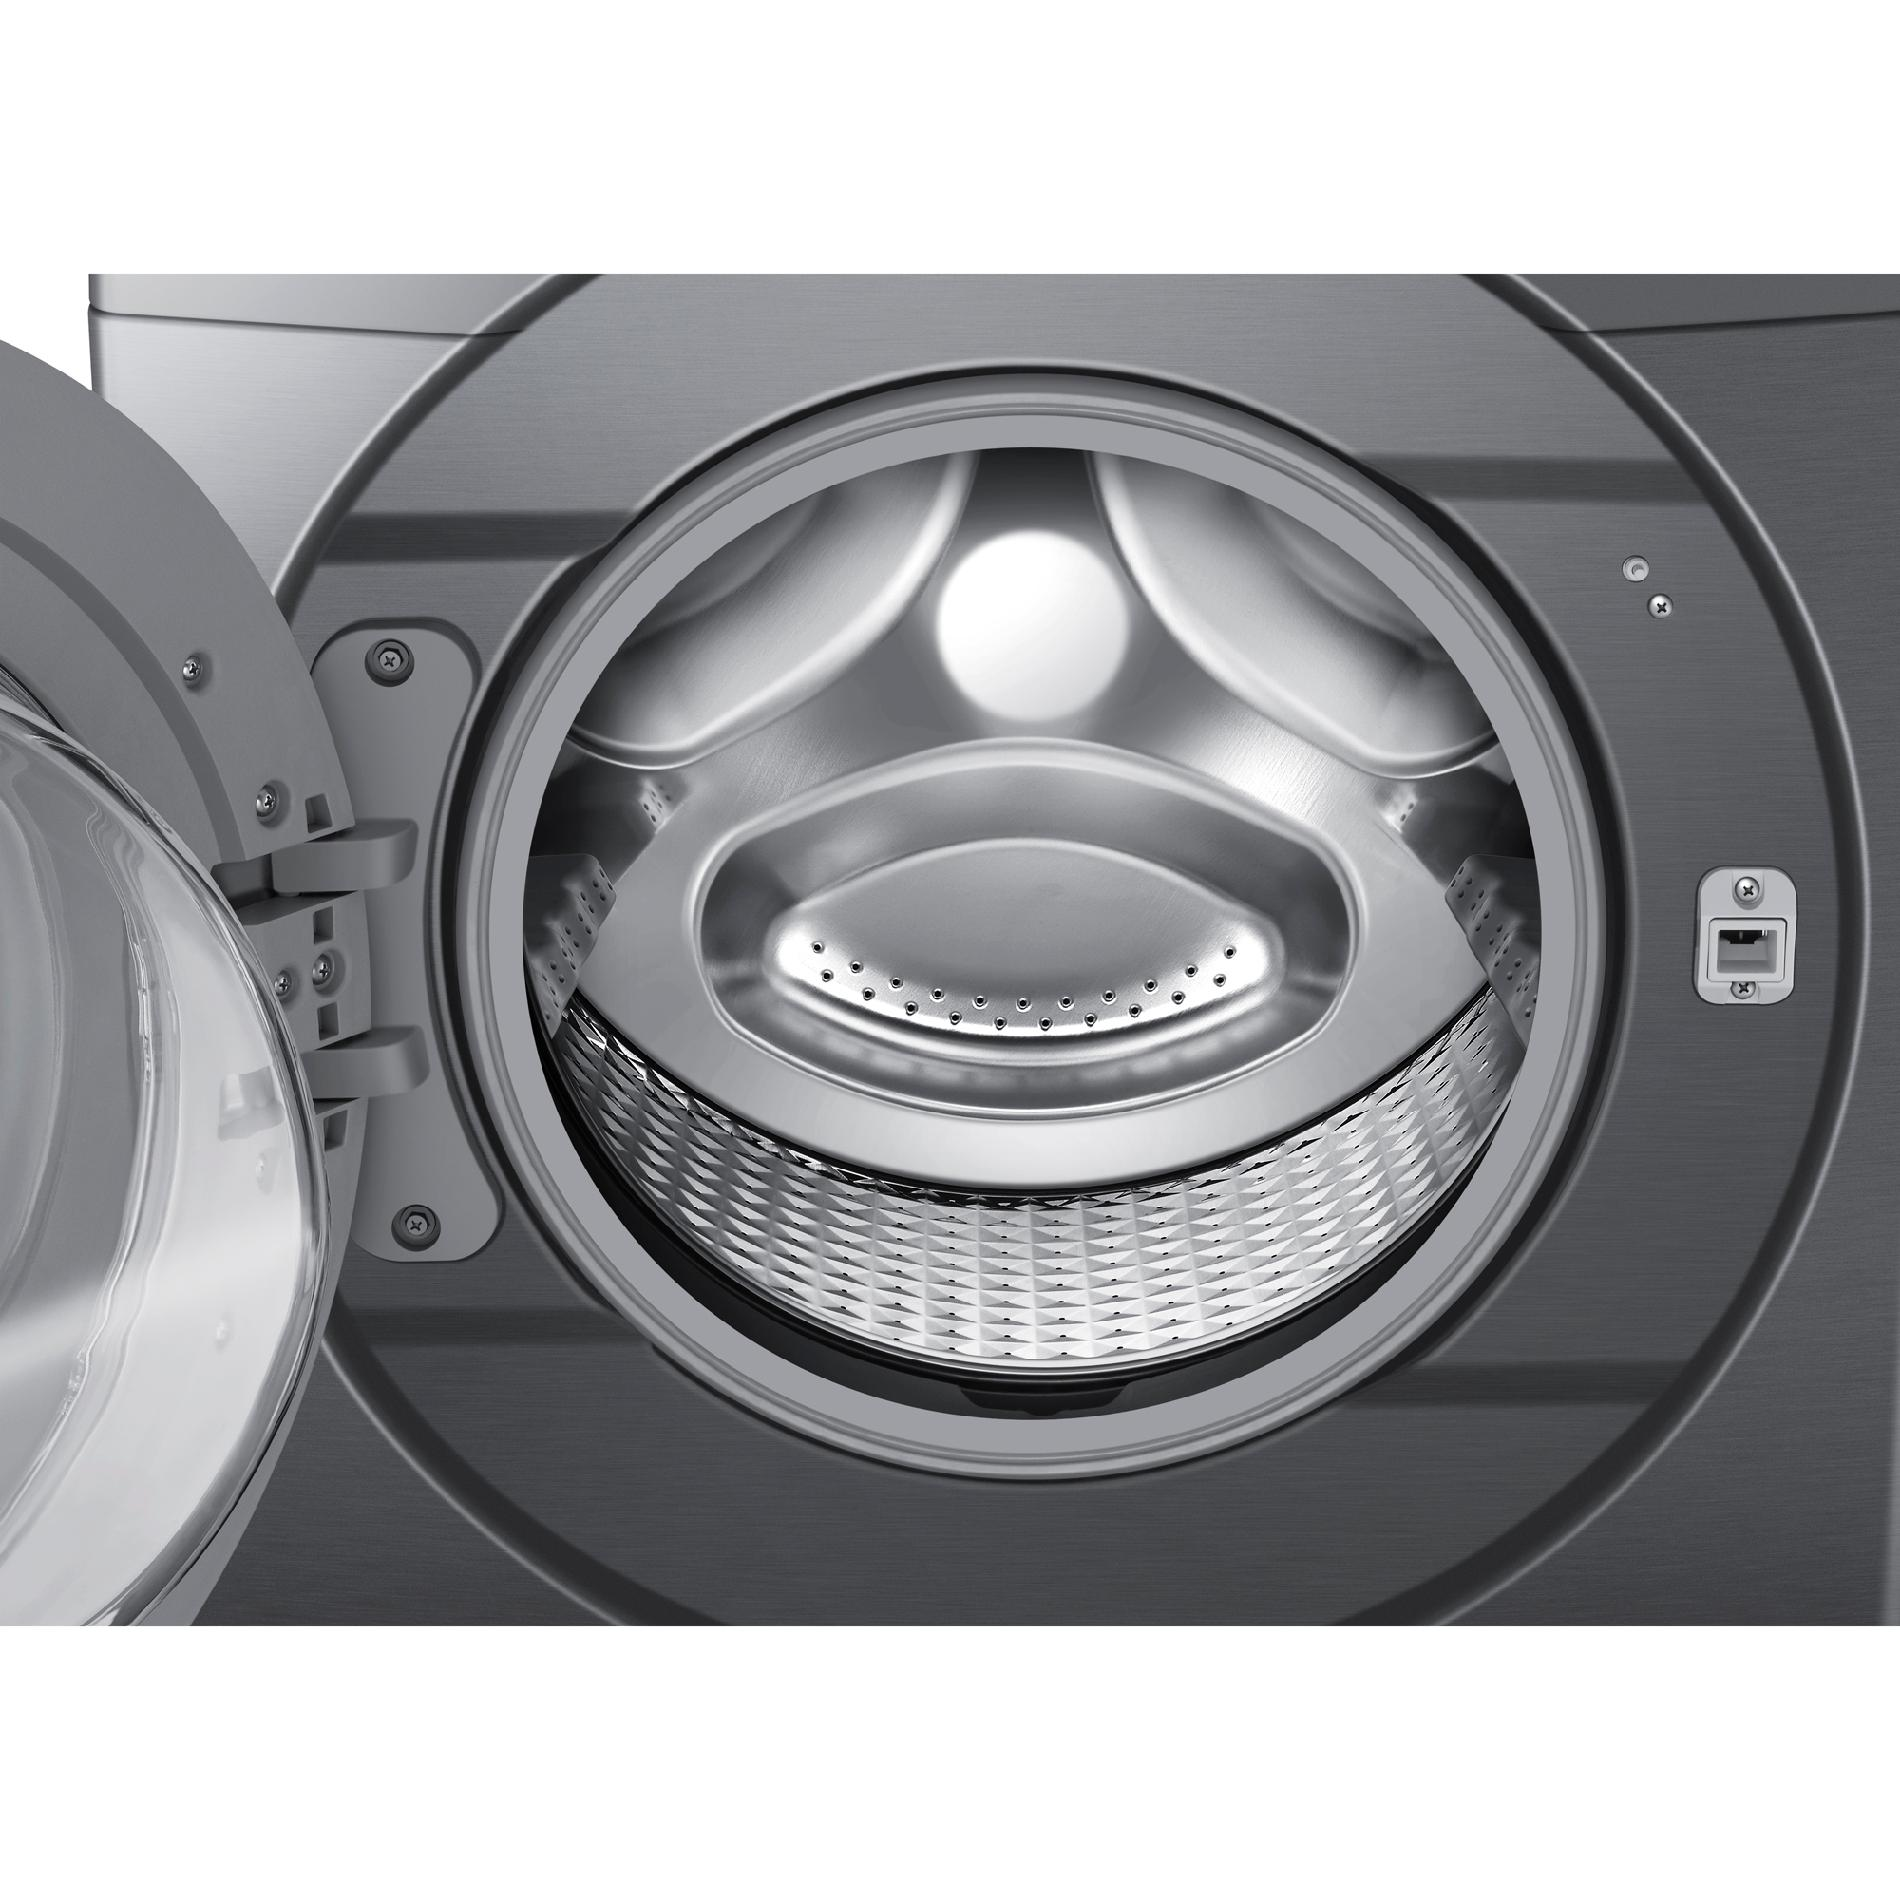 Samsung 4.2 cu. ft. Front-Load Washer w/ Steam Washing - Stainless Platinum